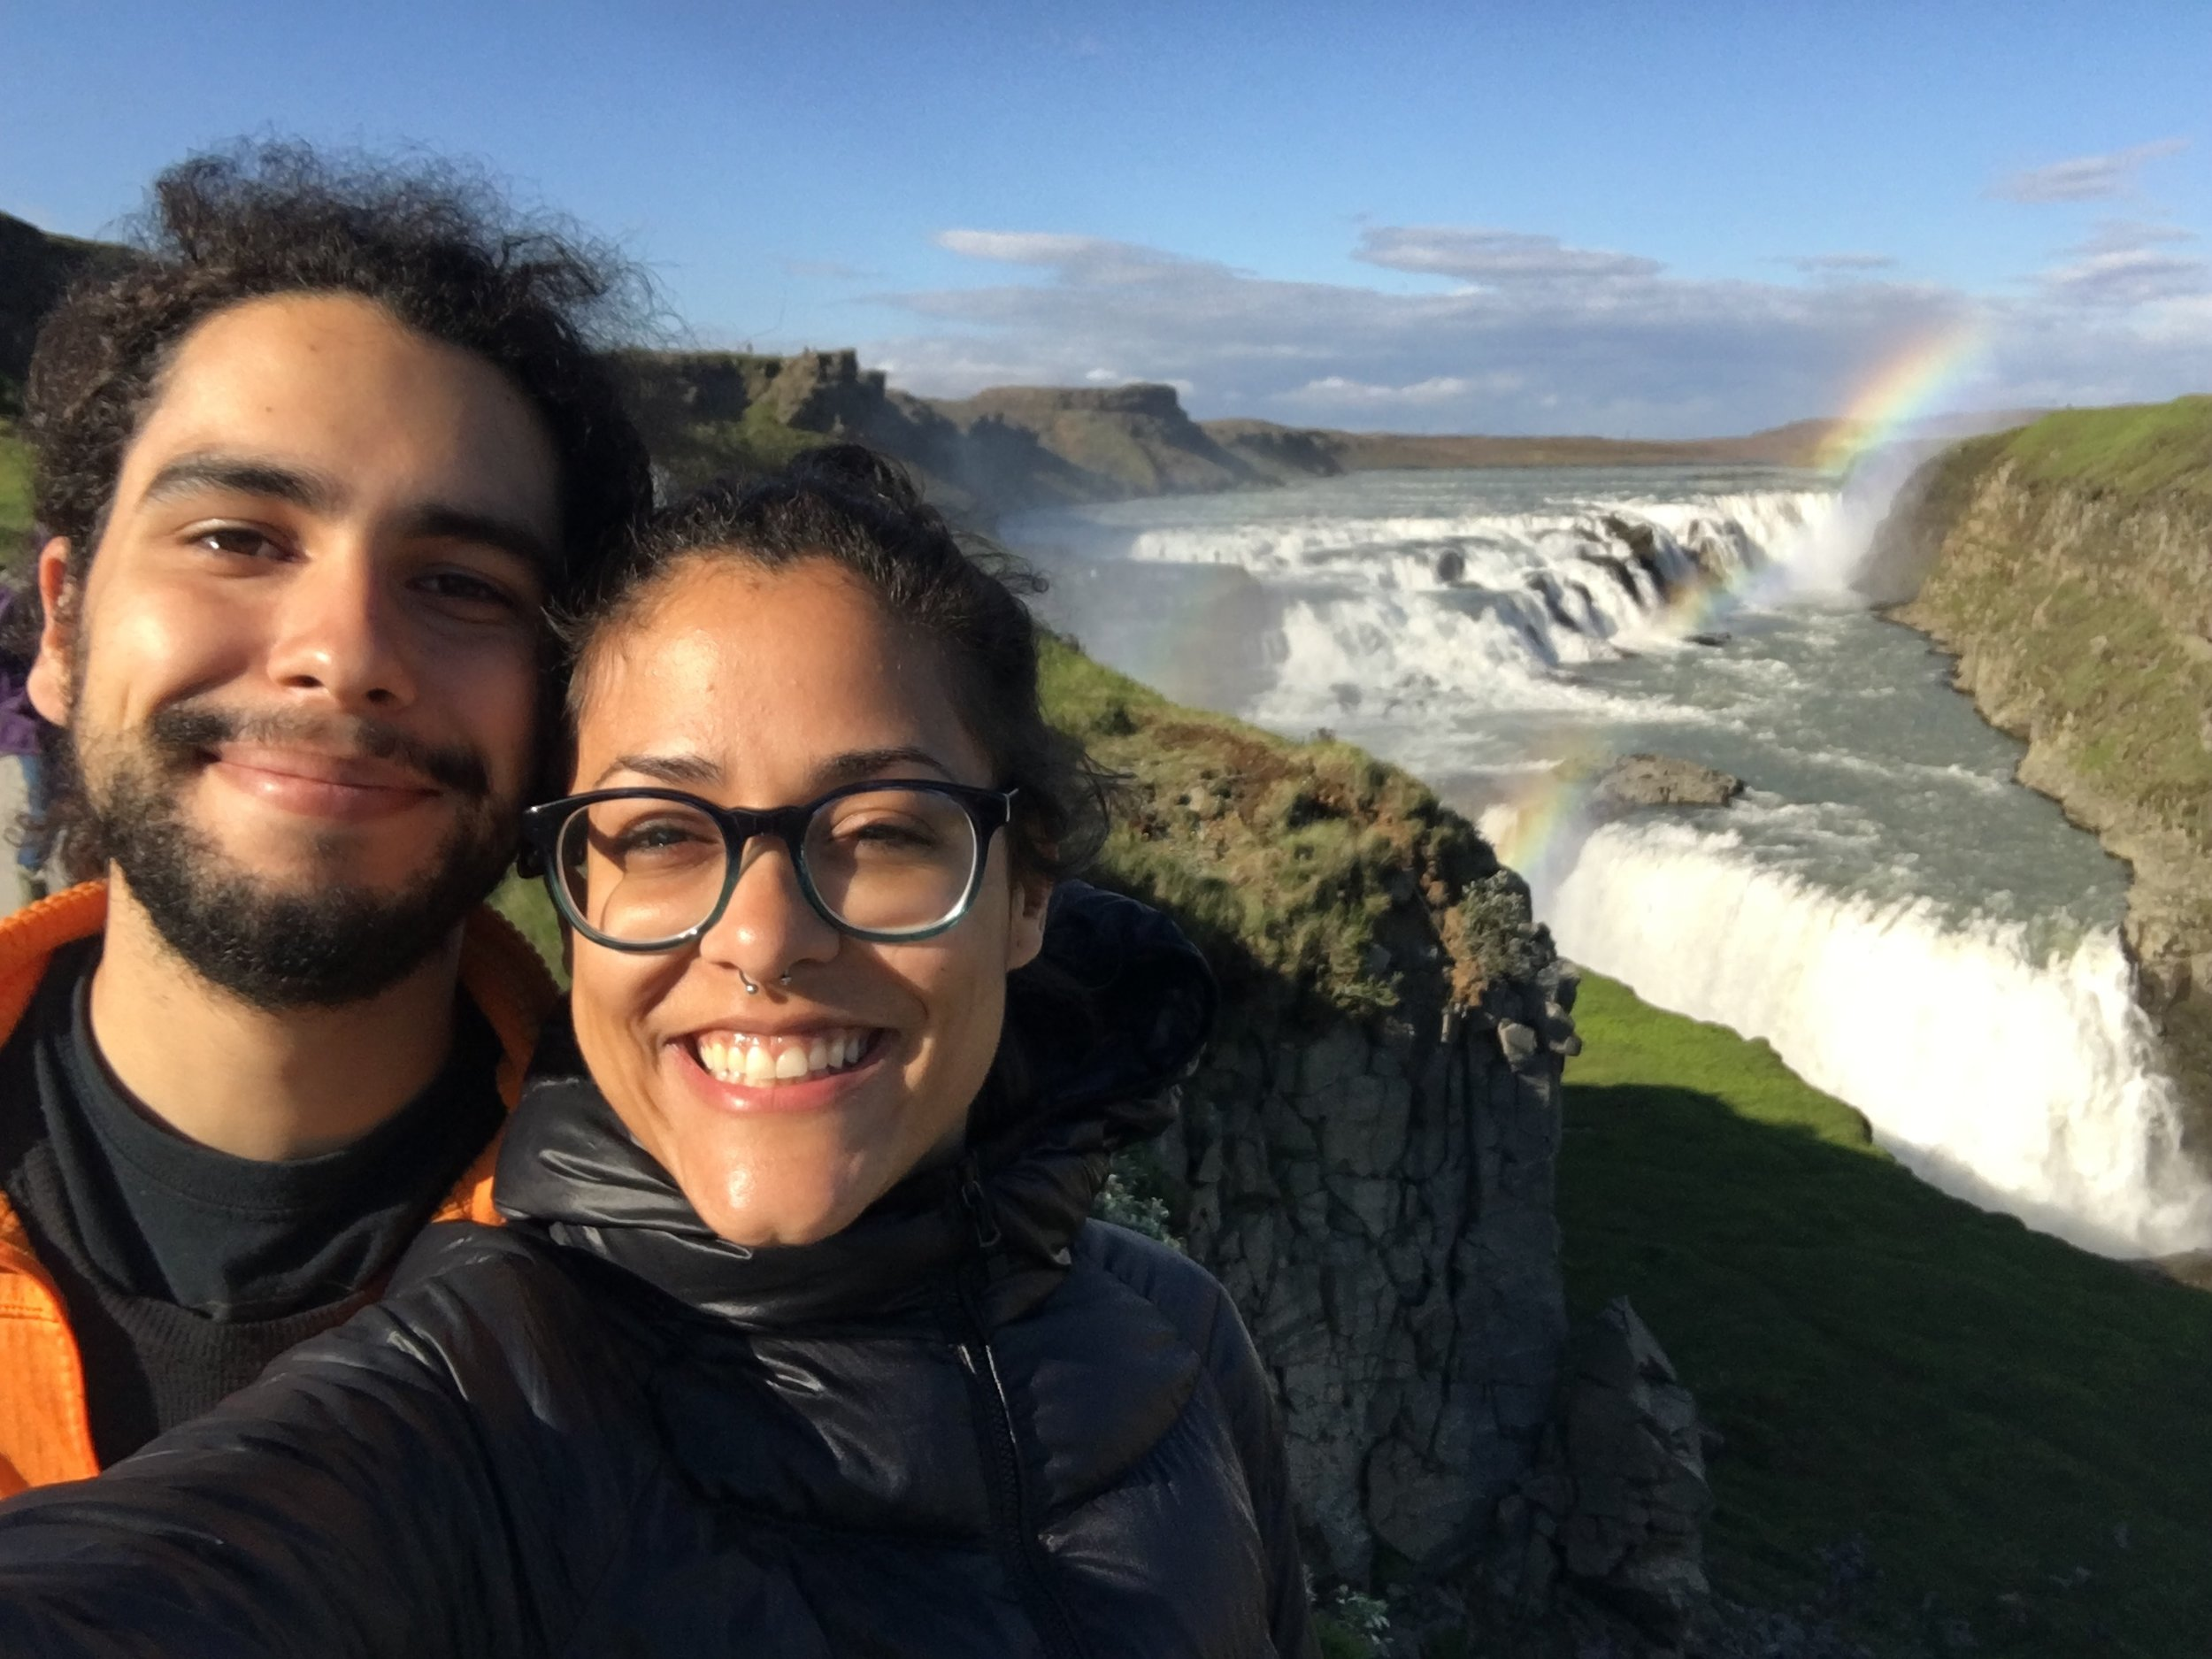 Andrew and I at Gullfoss Waterfall, which was the first major waterfall we saw on Day 1 of the road trip. There was a perfect rainbow that extended from one end of the waterfall to the other. Mesmerizing!